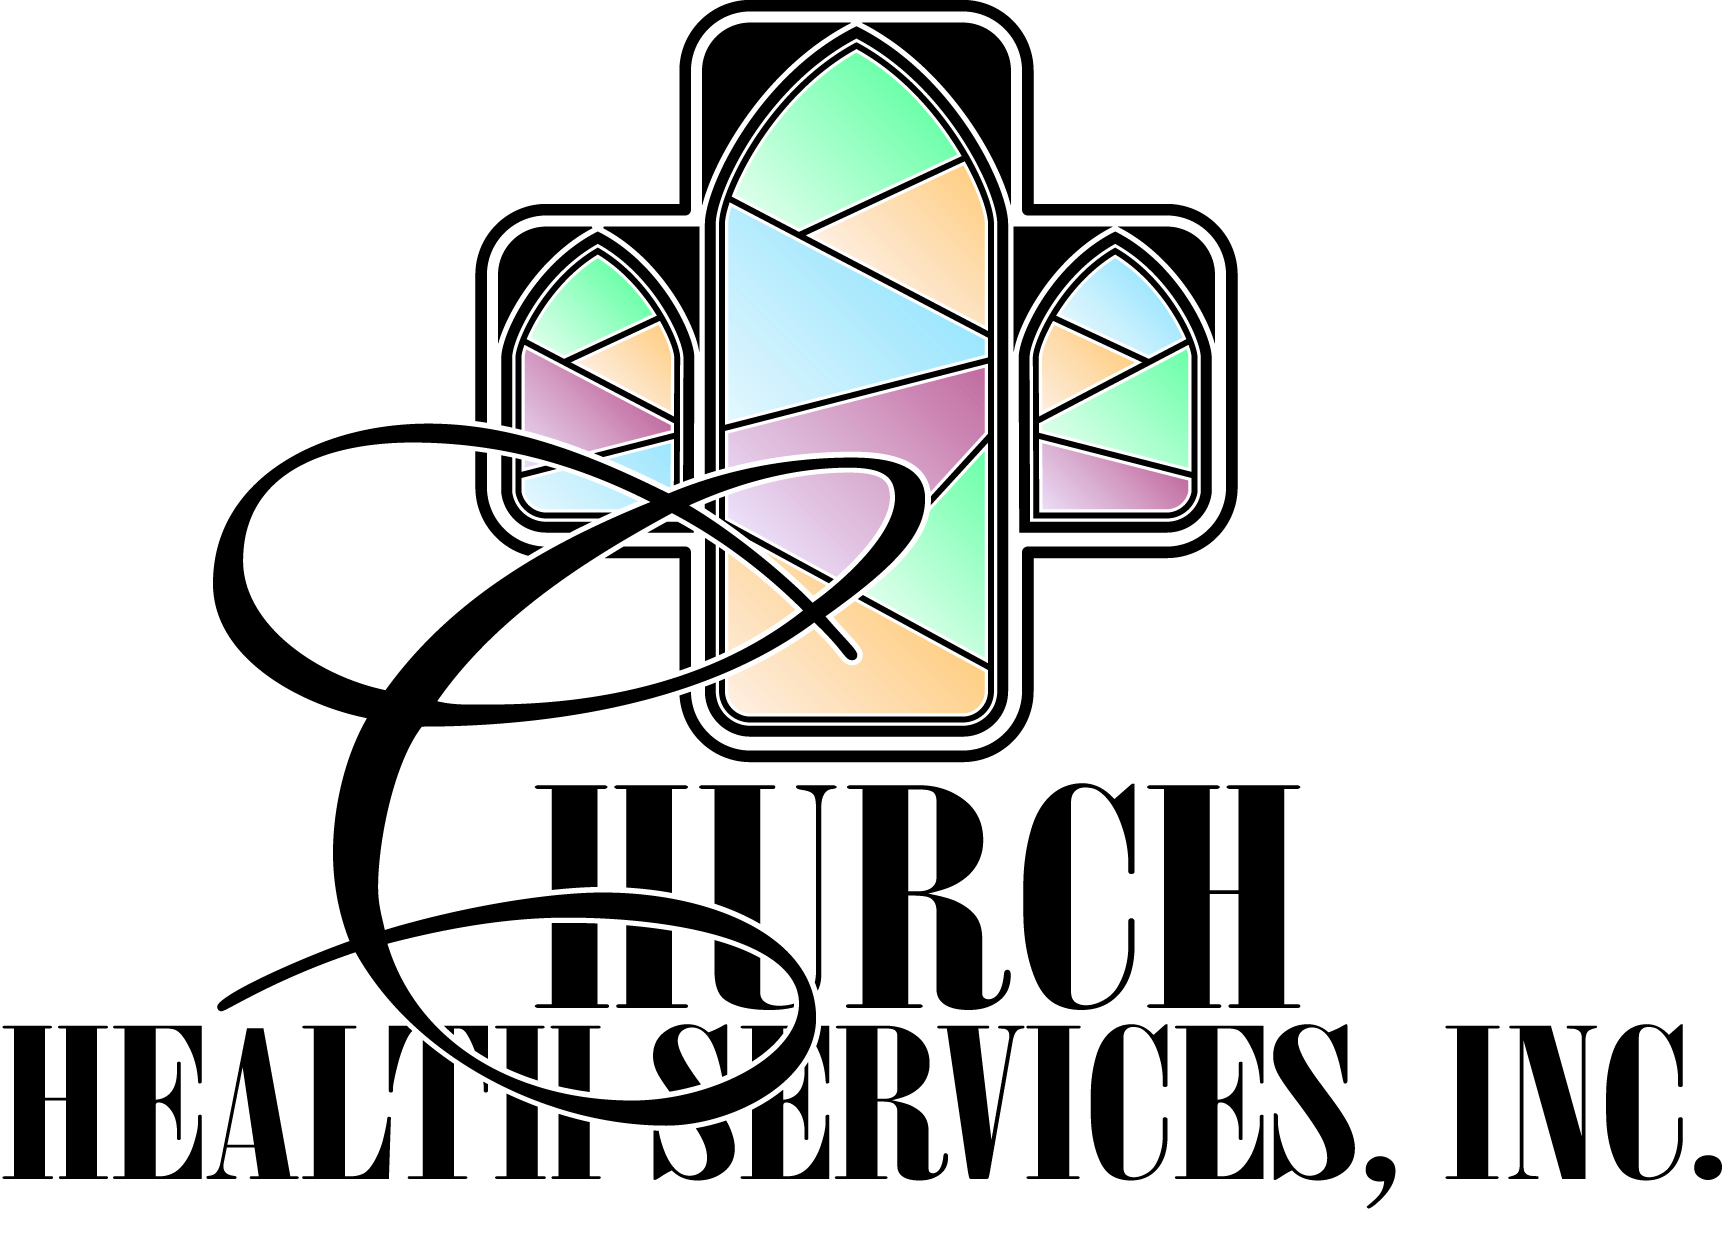 Church health services logo